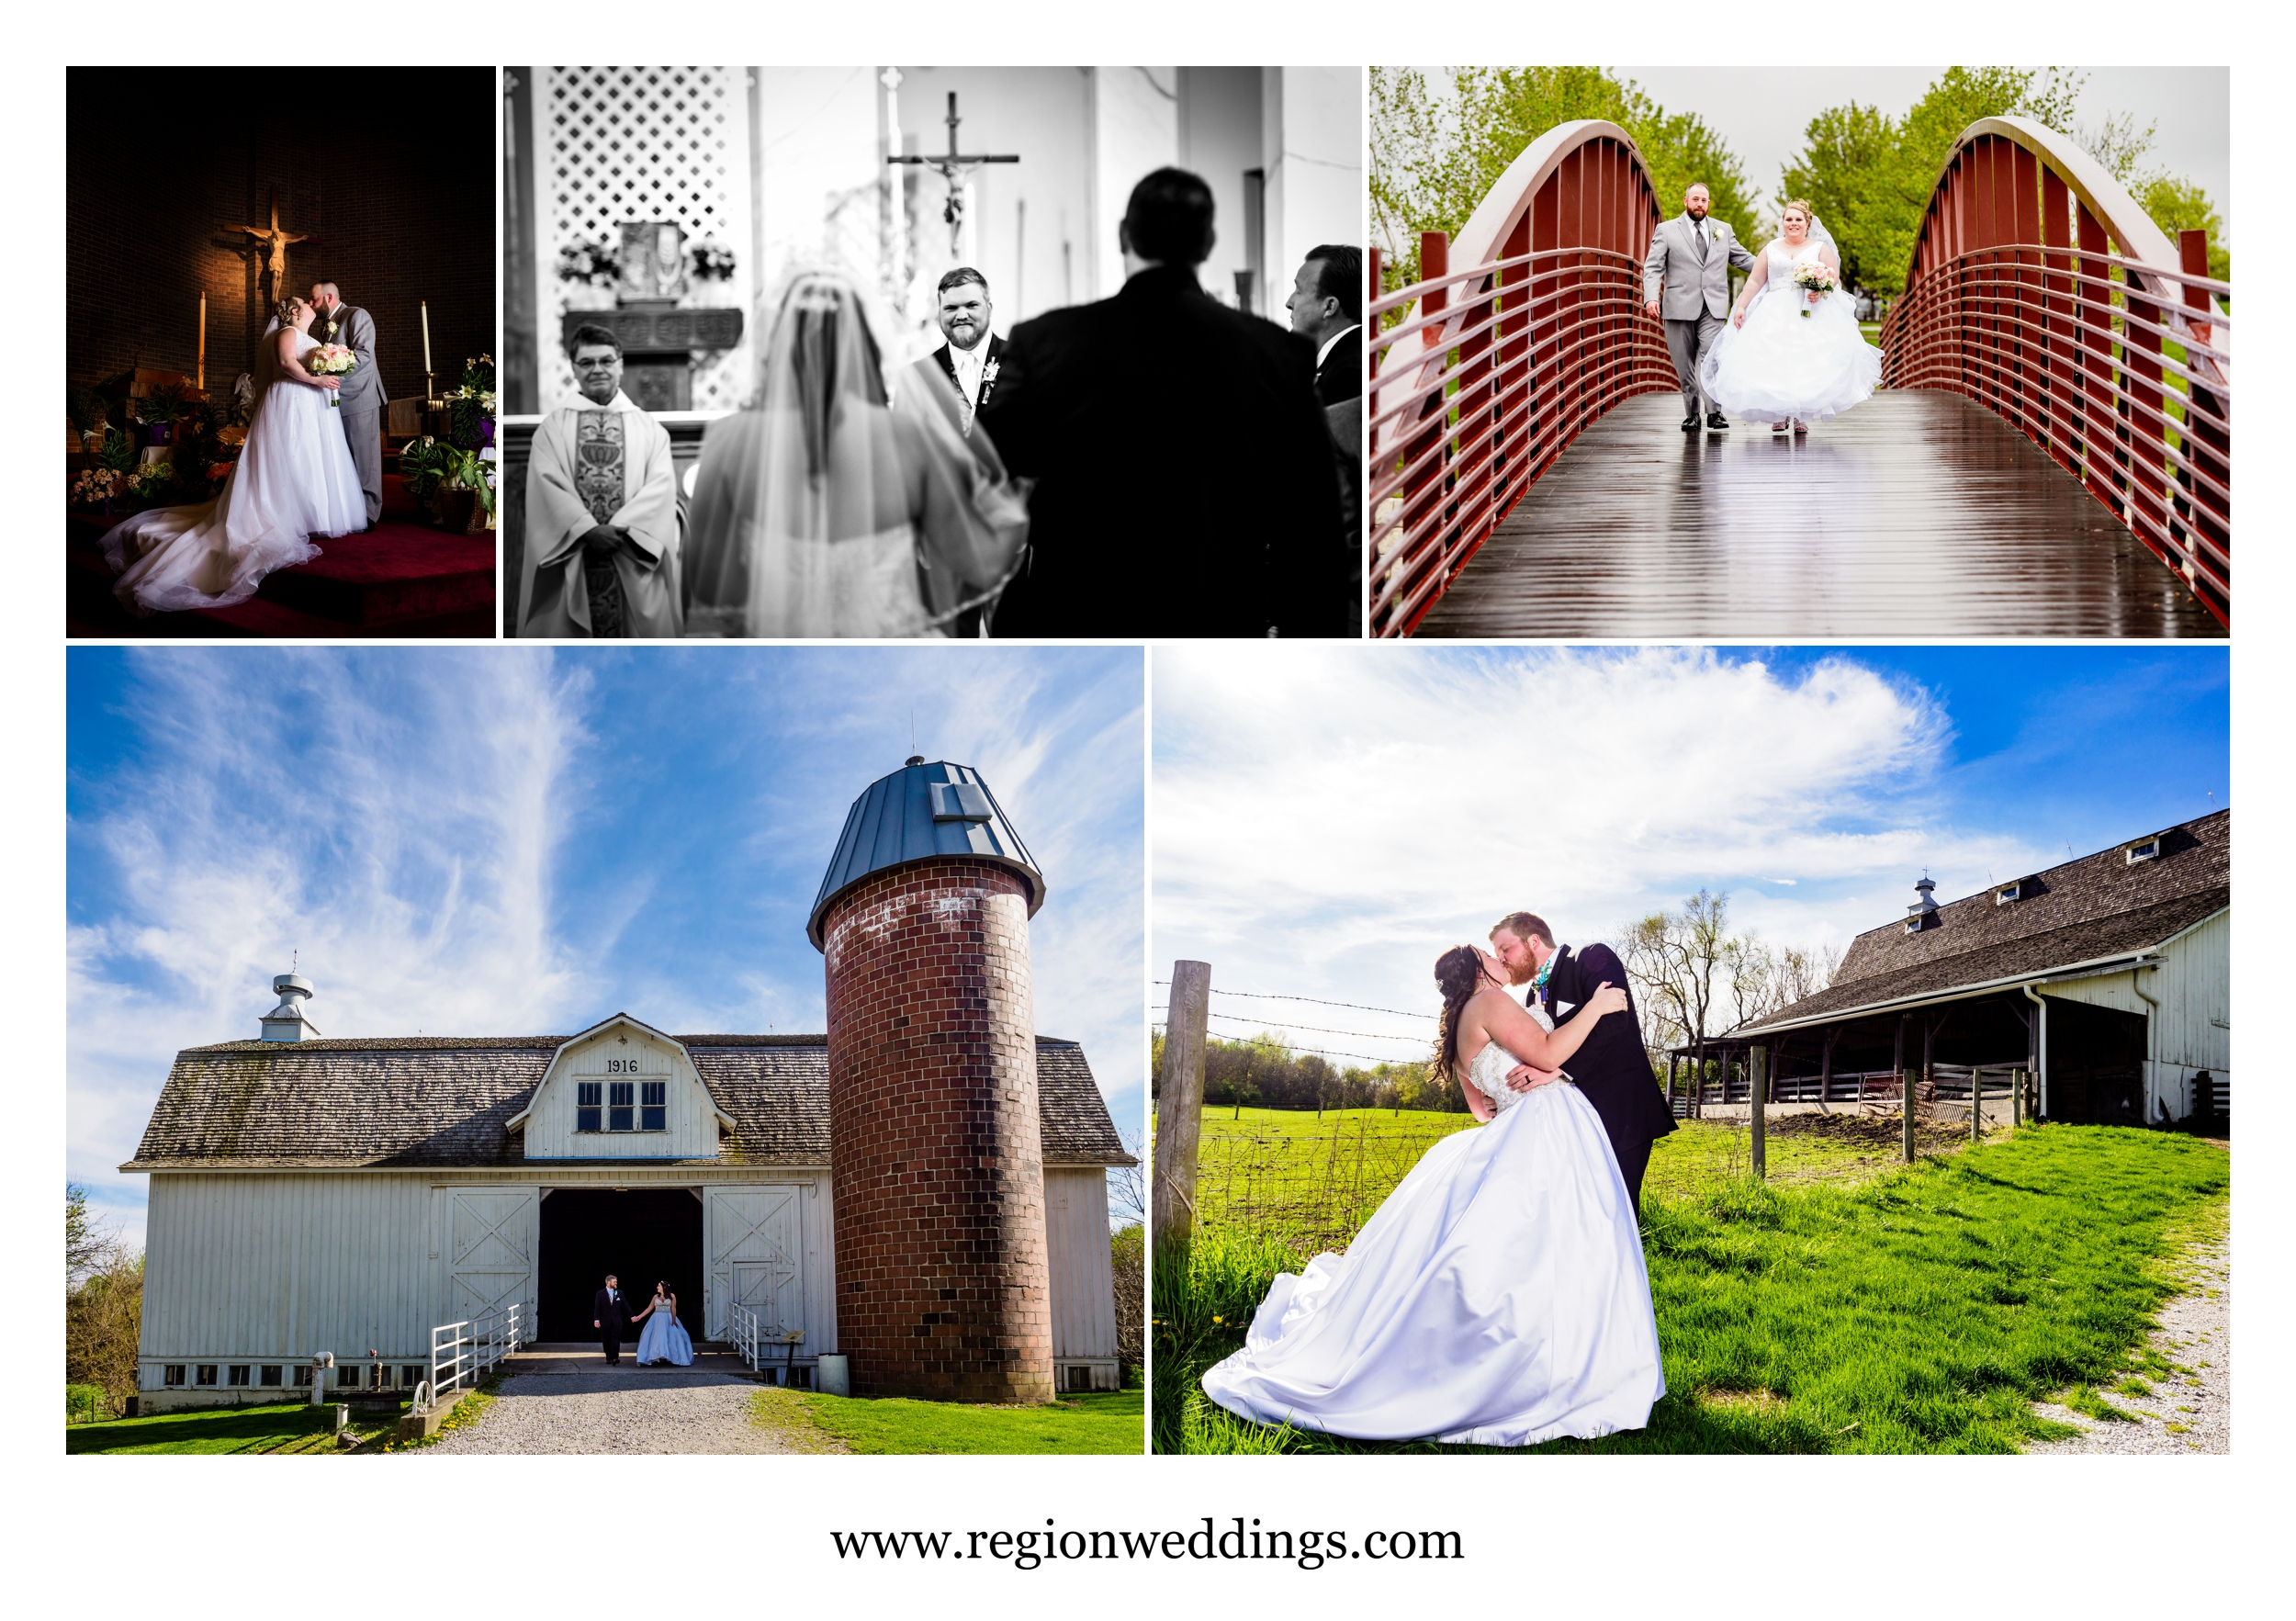 Spring wedding photos in Northwest Indiana.